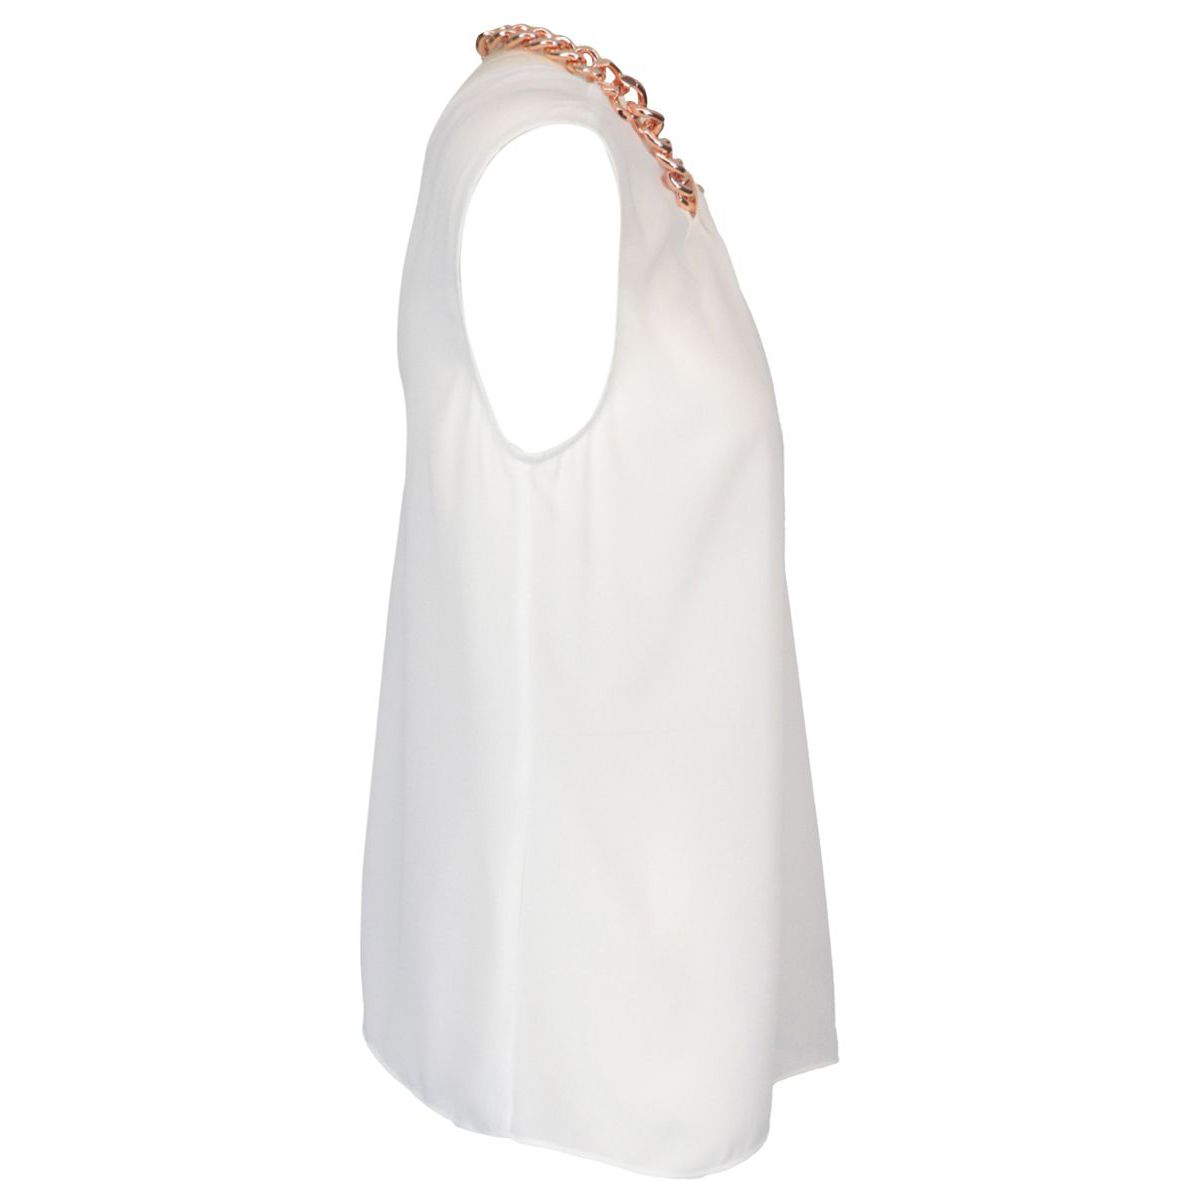 Folgore georgette tank top with chain White Nenette